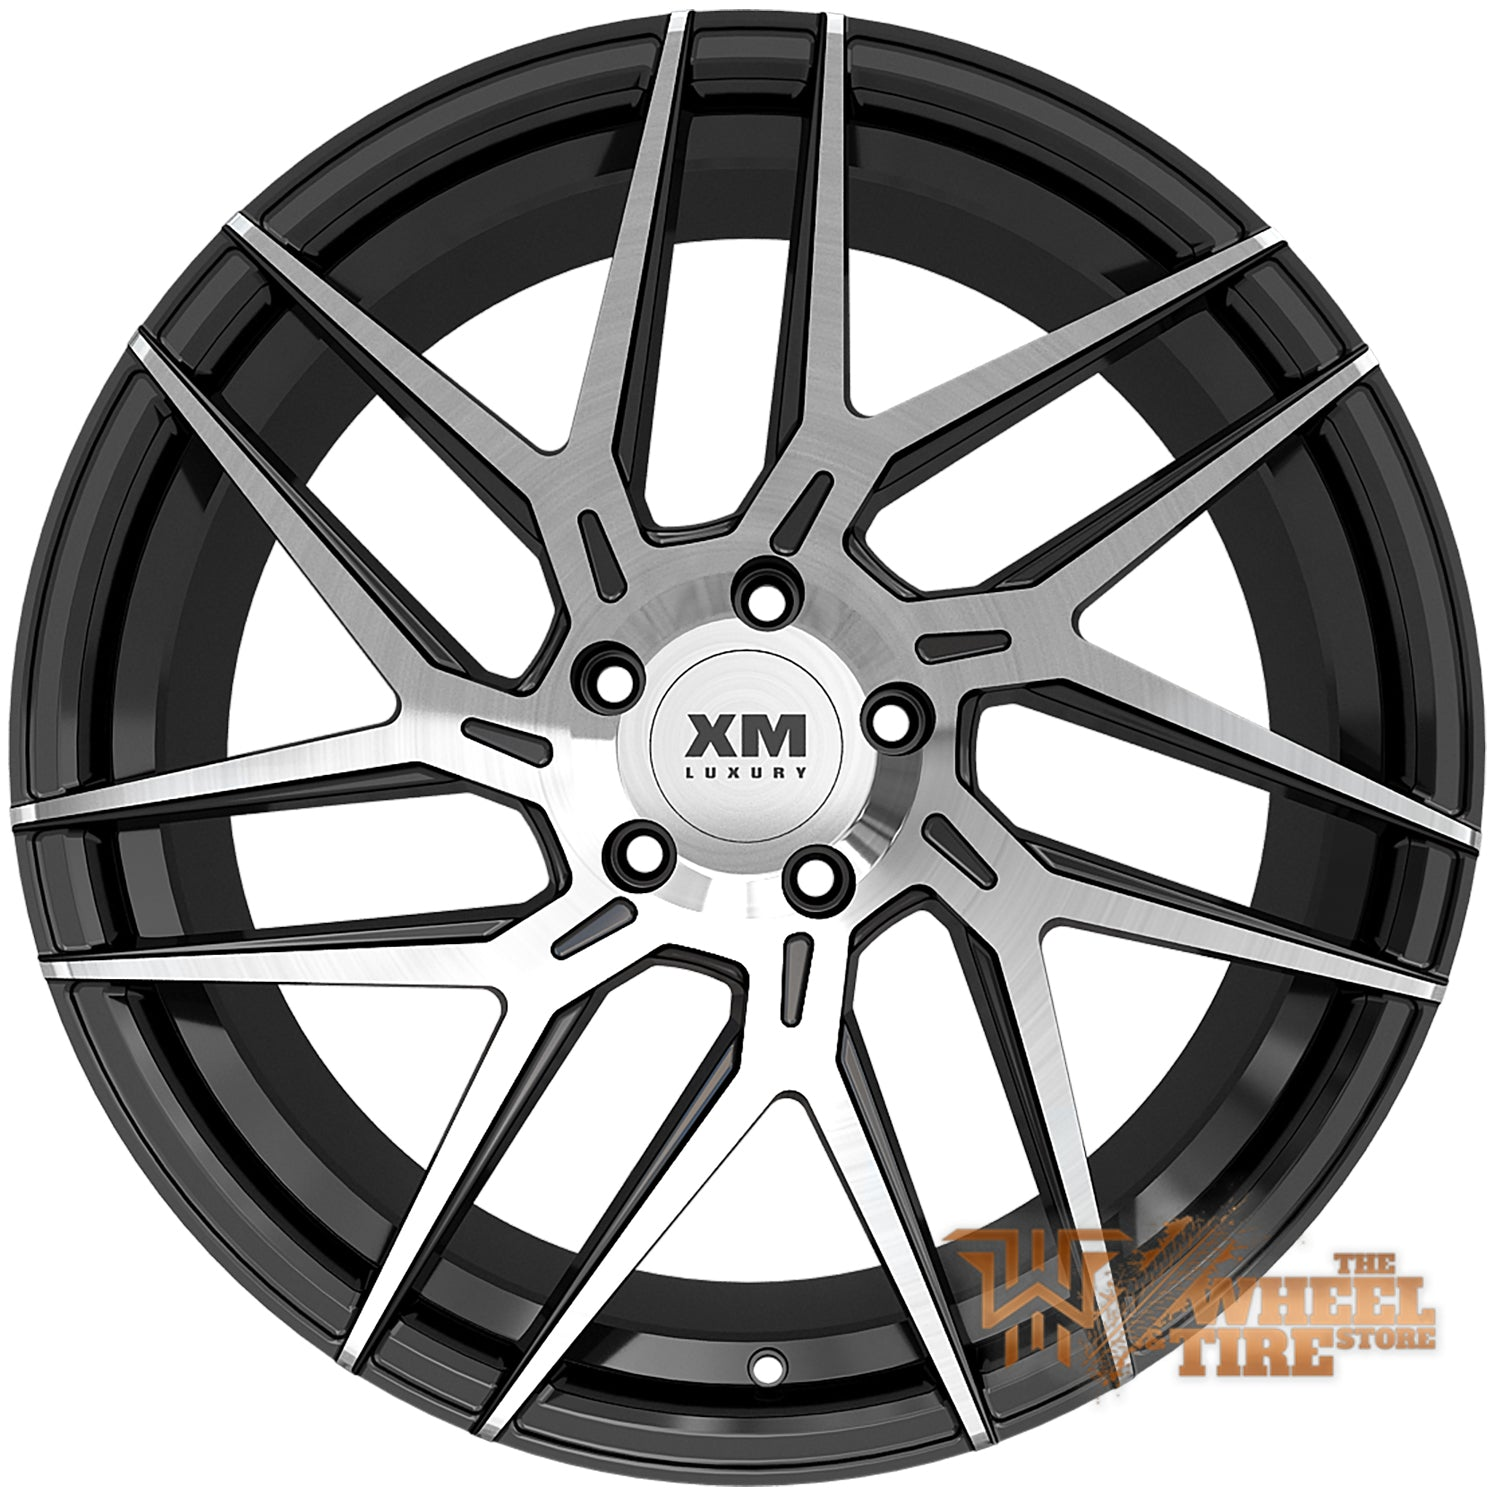 XM LUXURY XM-208 Wheel in Black Machined Face (Set of 4)